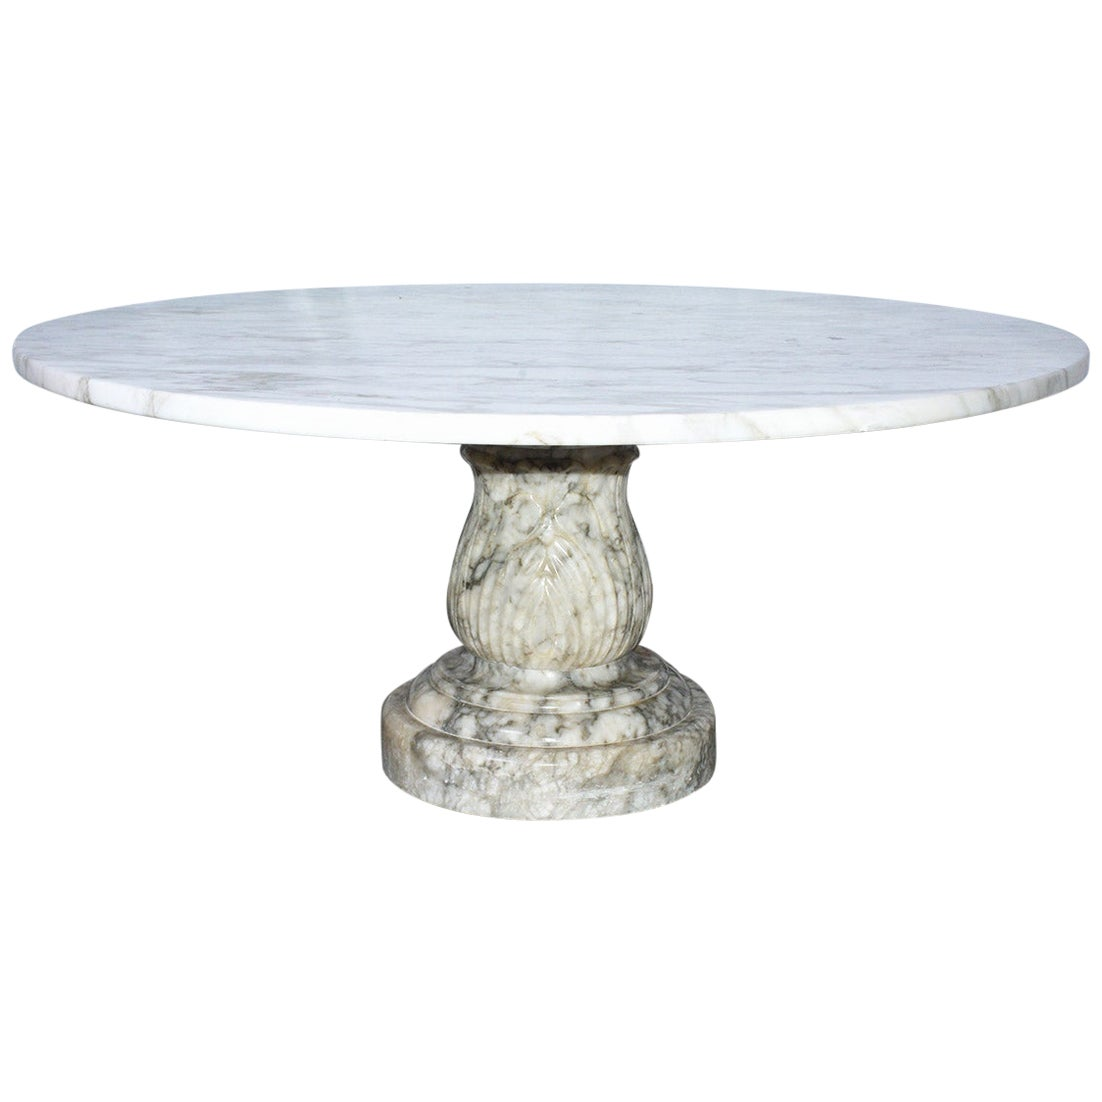 Round Marble Top Coffee Table with Carved Marble Base